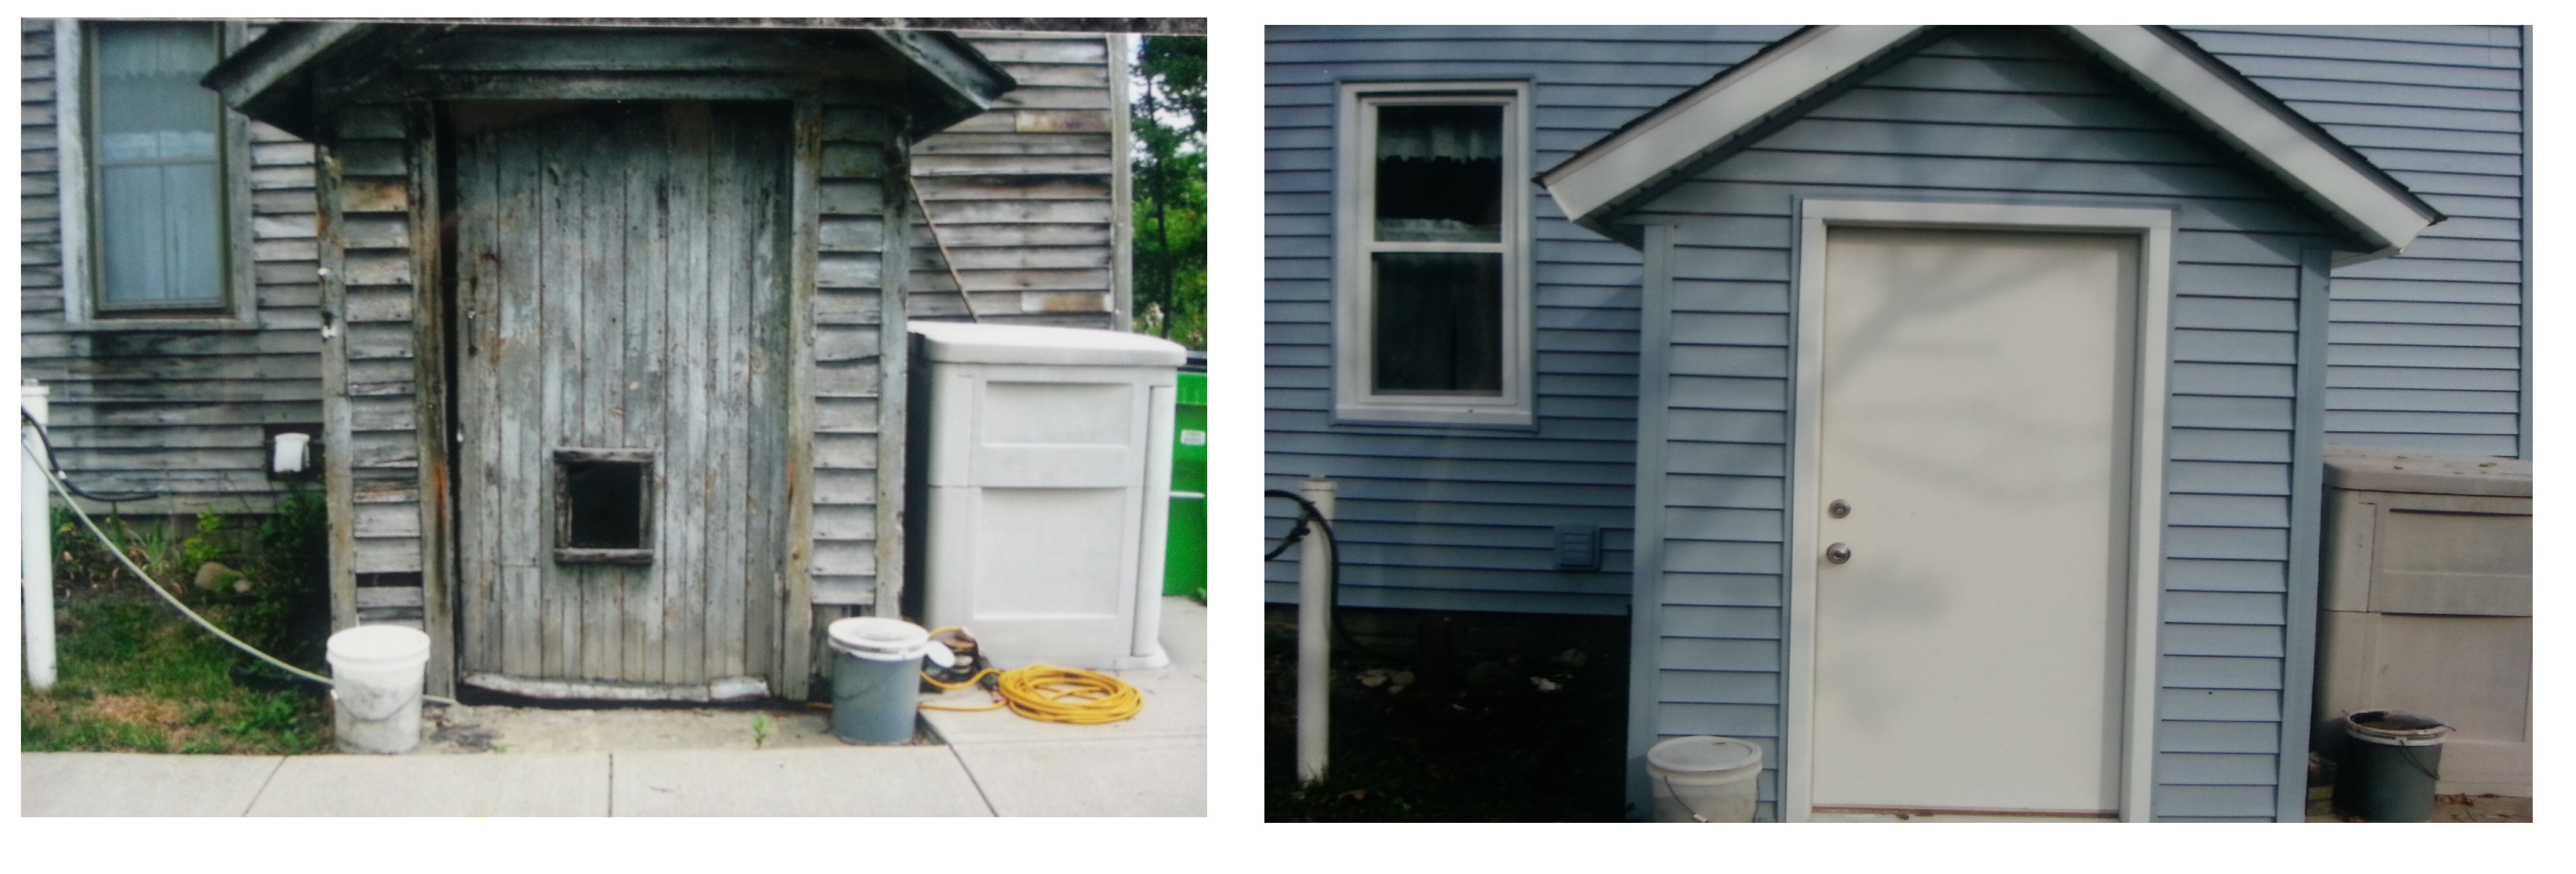 Twinsburg Double Steel Entry Doors Before And After Integrity Windows